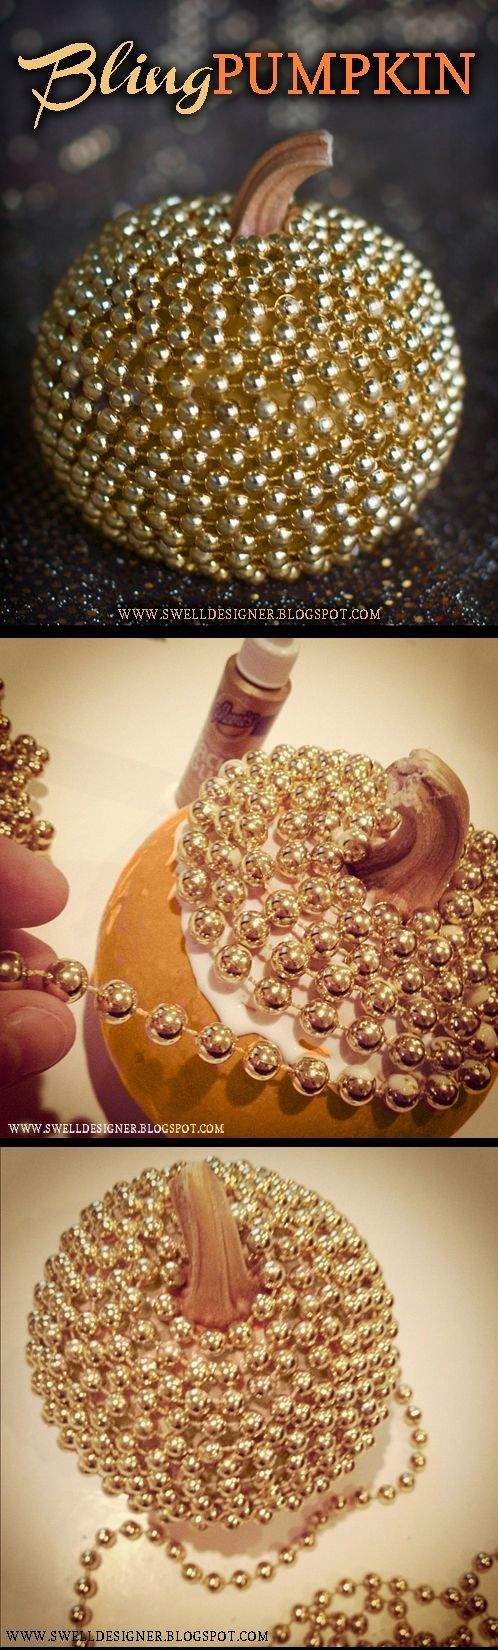 Diy bling pumpkins pictures photos and images for - Decoration halloween a fabriquer ...